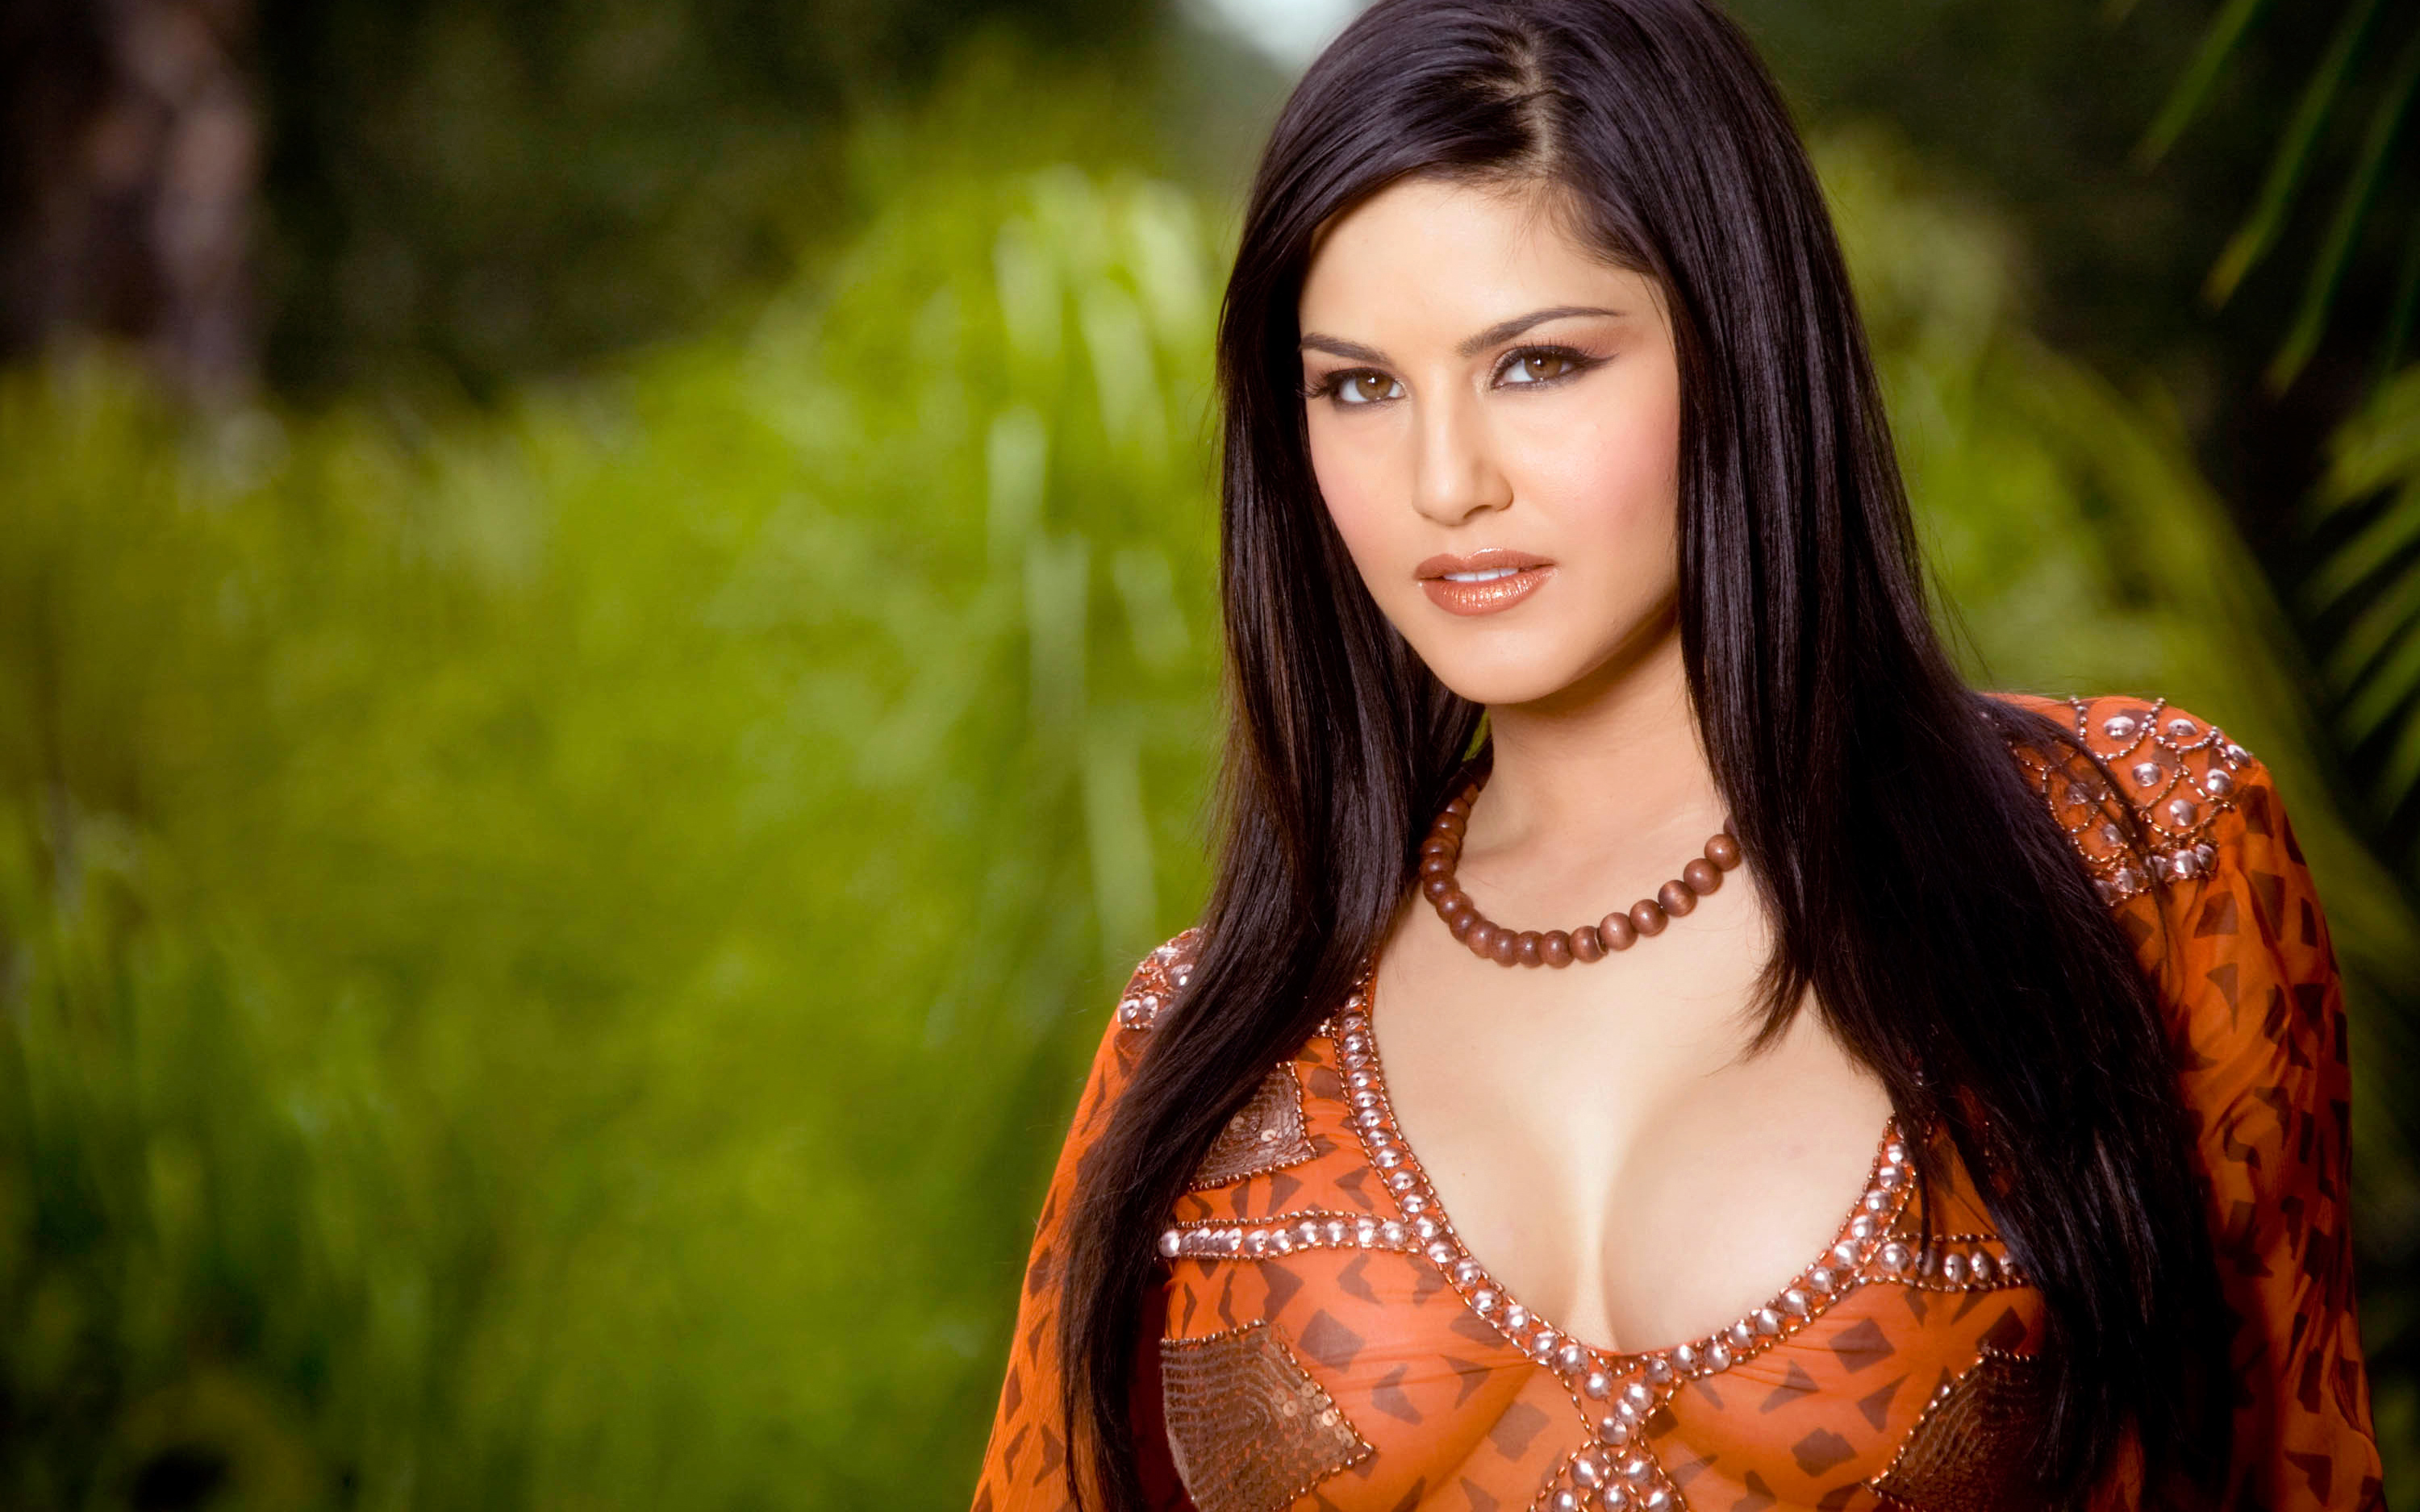 Sunny Leone Wallpapers HD Wallpapers 3000x1875